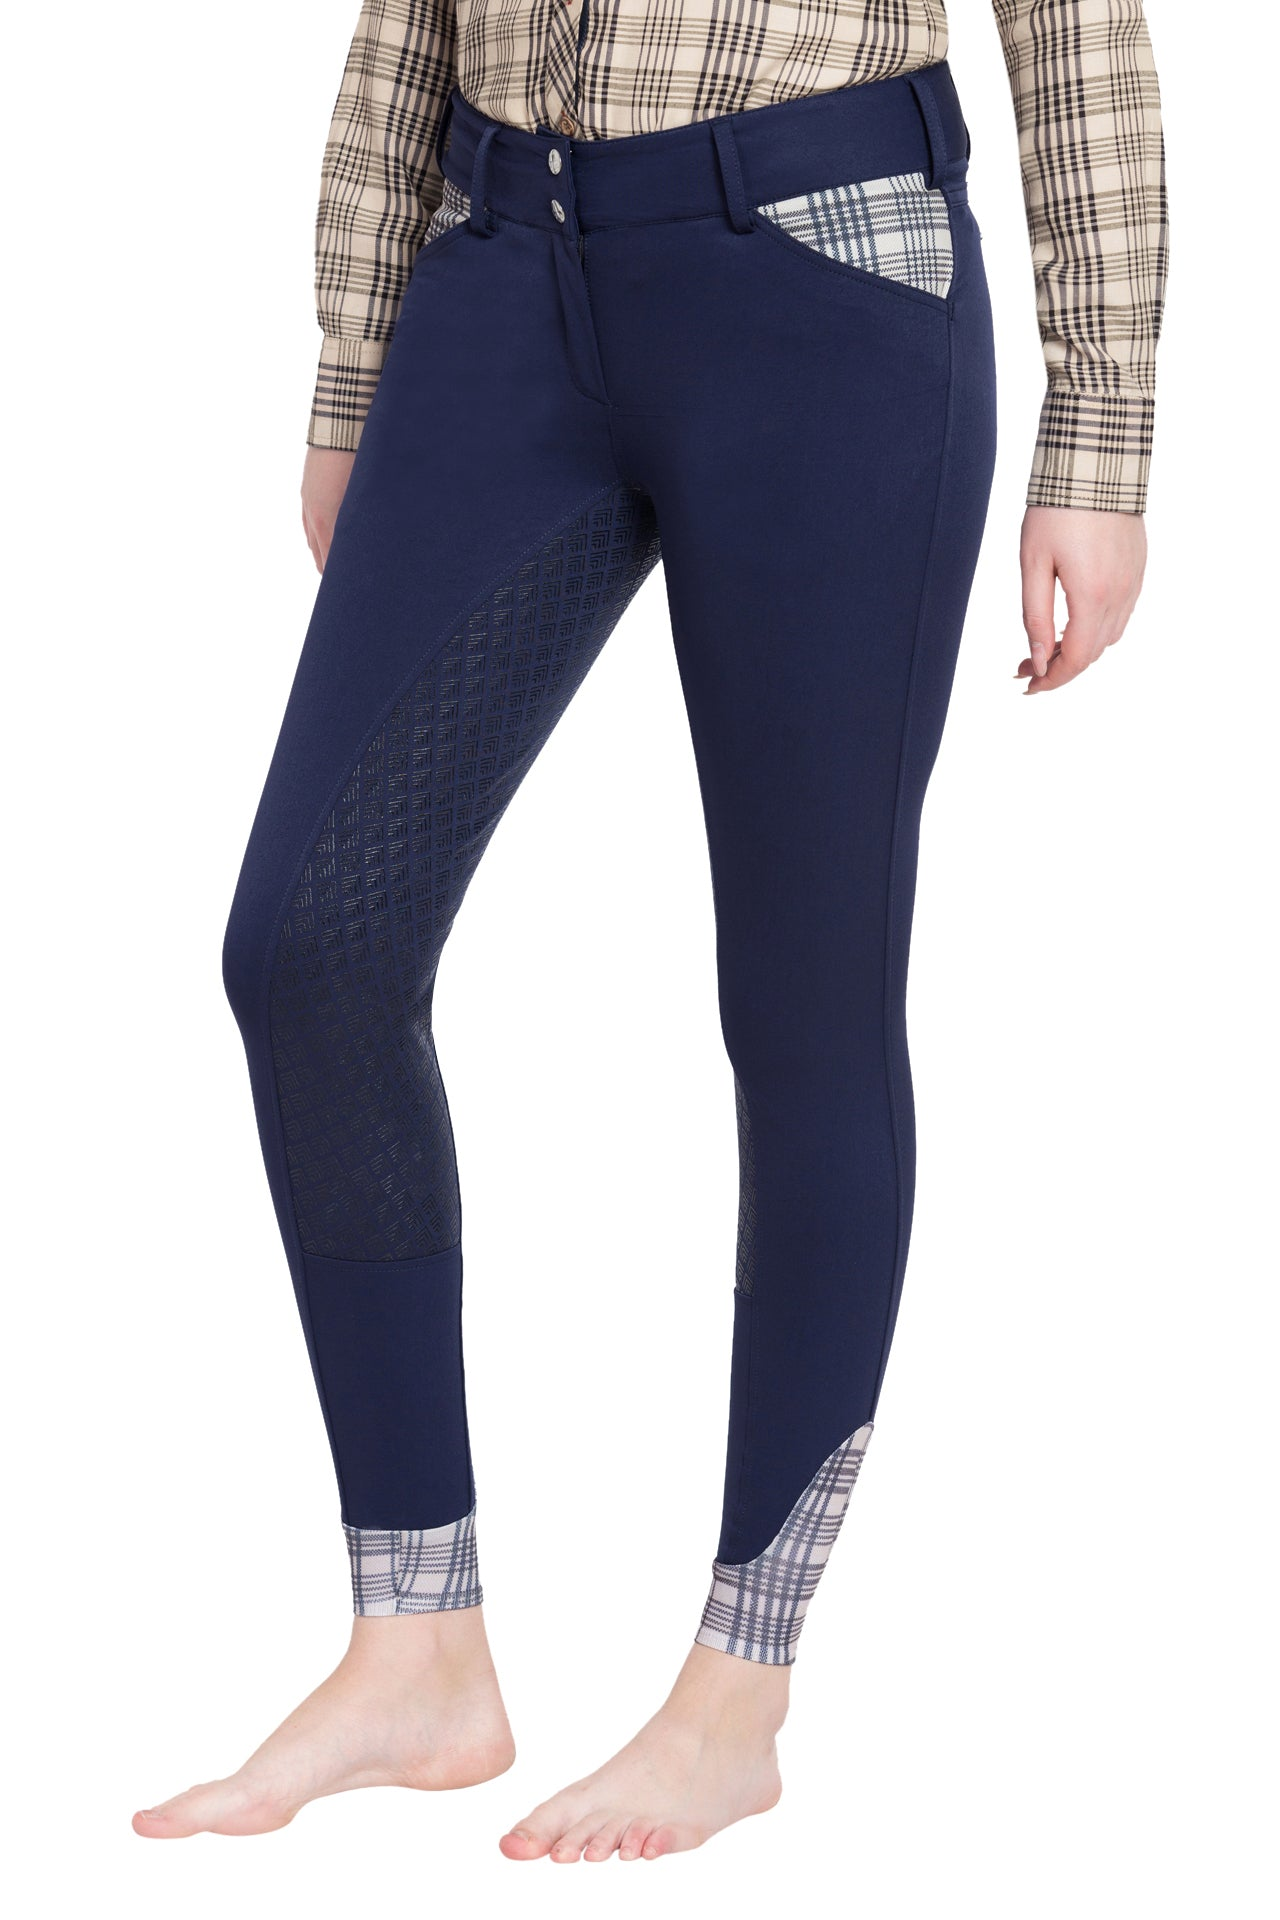 Ladies Pro Silicone Full Seat Breeches - Baker - Breeches.com